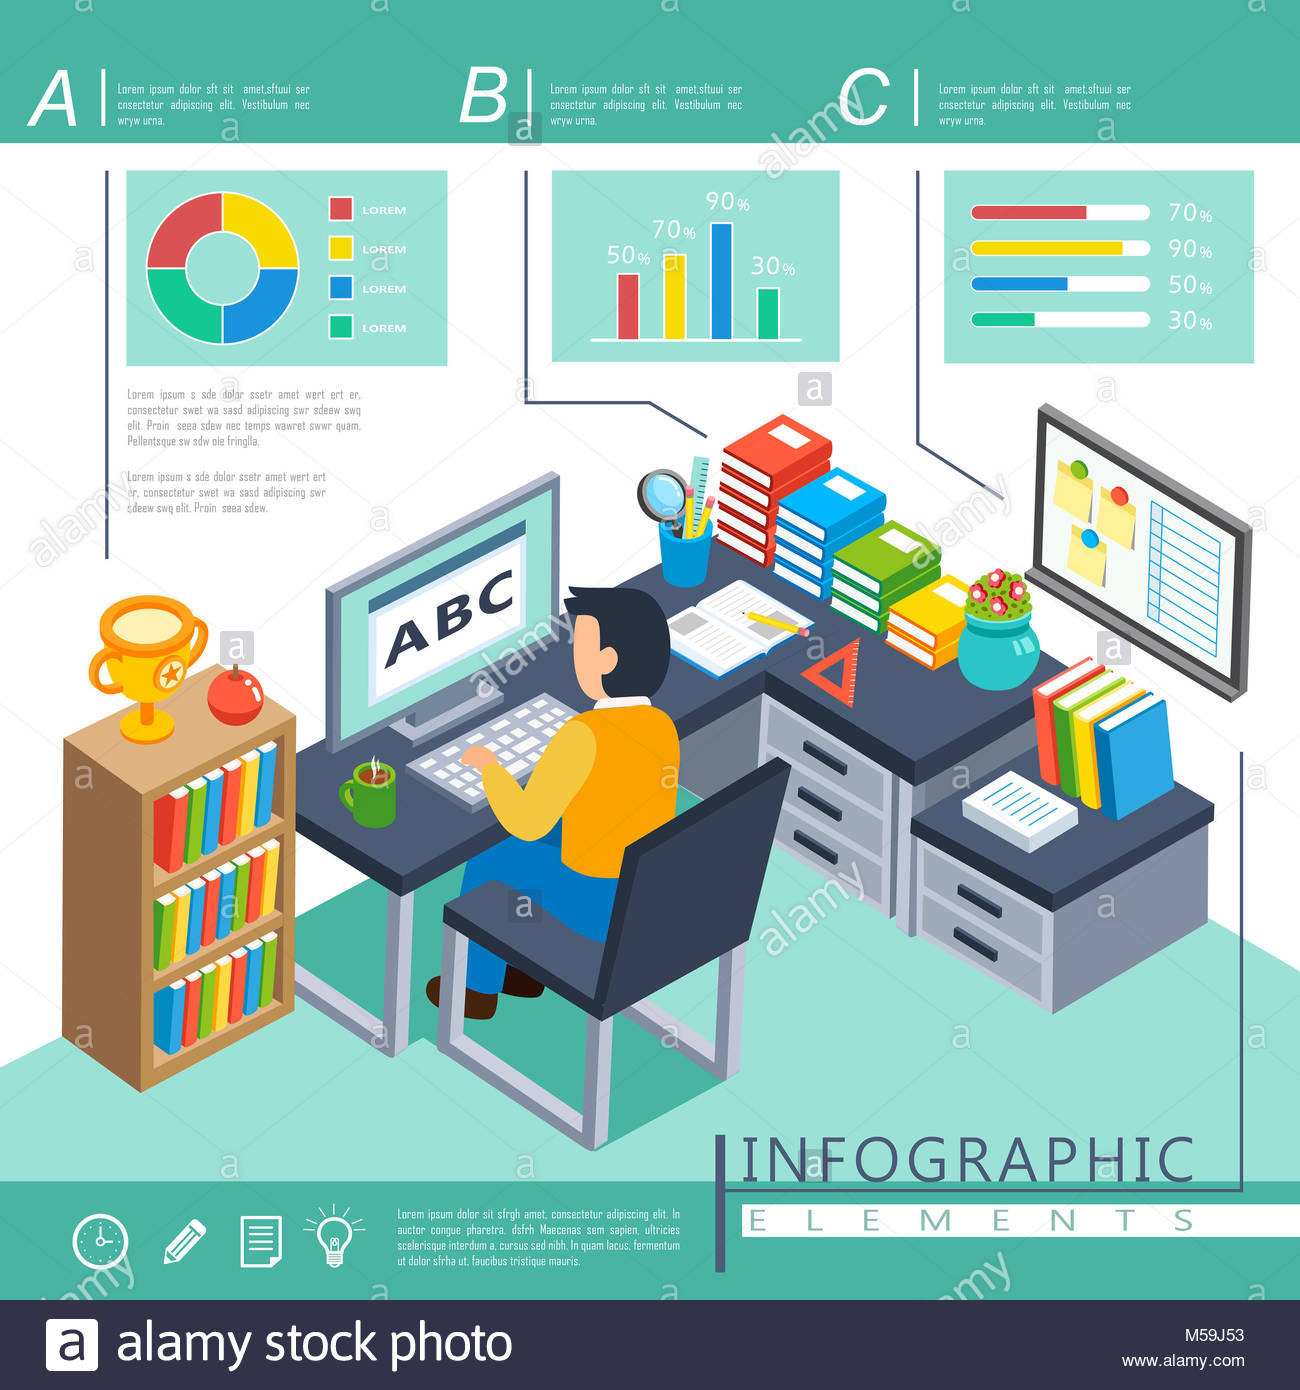 infographic template online - Selo.l-ink.co